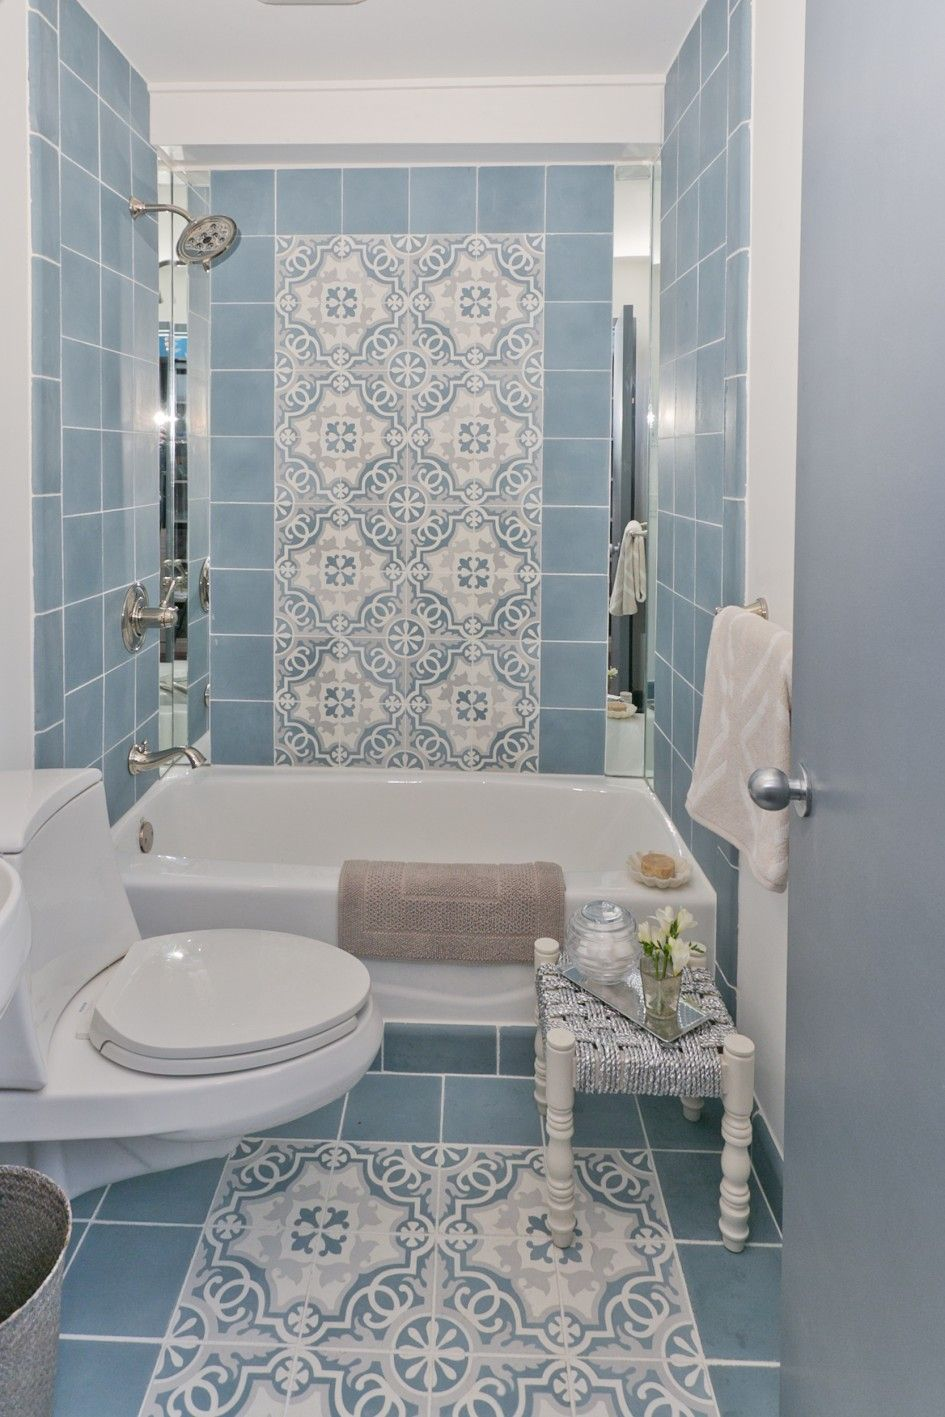 Bathroom designs pictures with tiles - 40 Vintage Blue Bathroom Tiles Ideas And Pictures Vintage Bathroom Designs Vintage Bathroom Designs